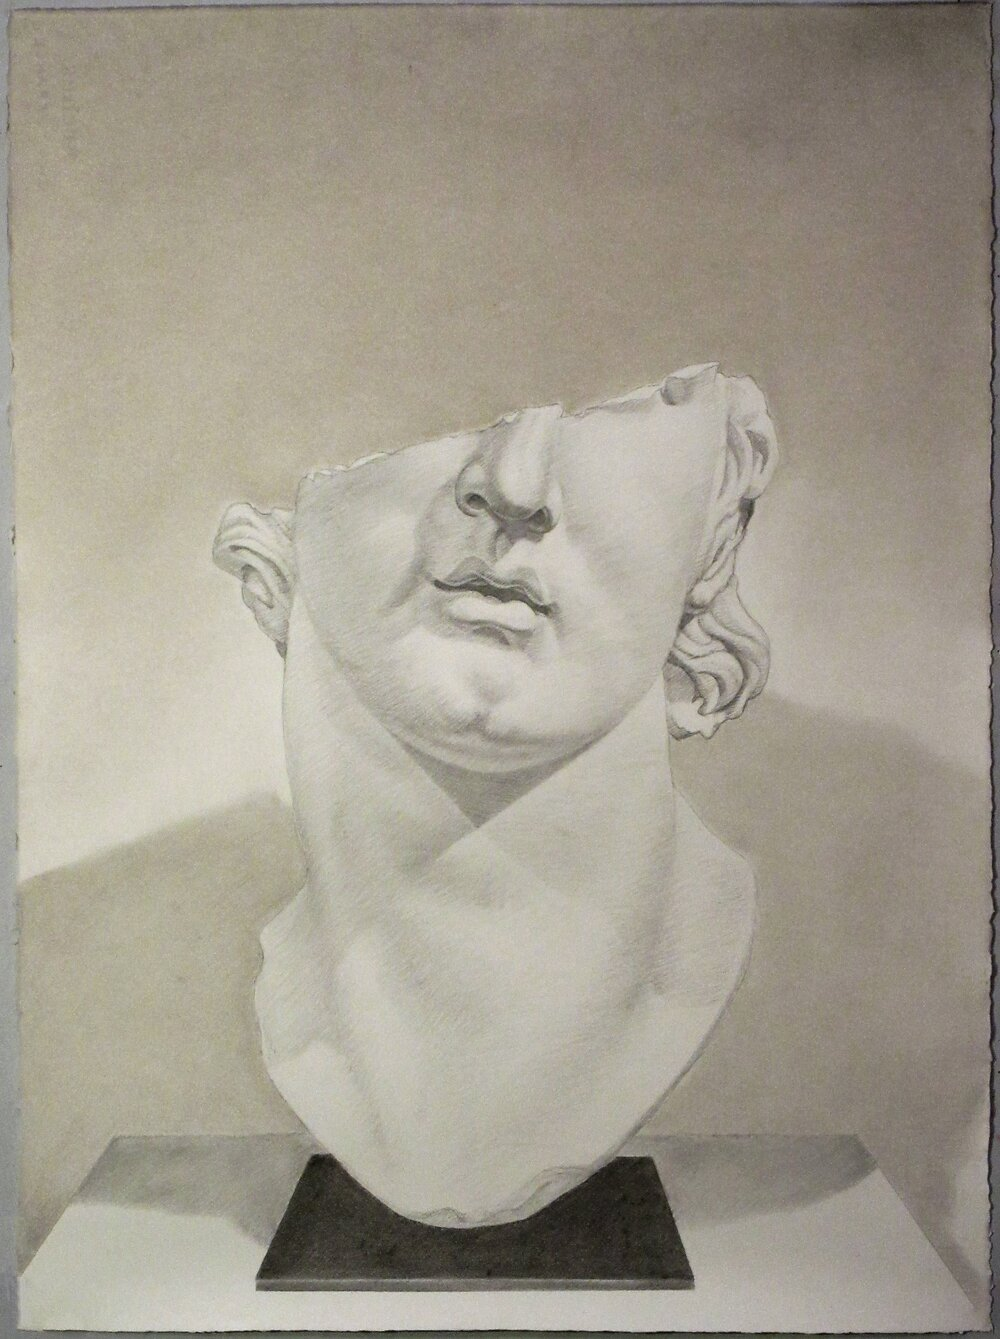 Pergamon Alexander, 2016, pencil and chalk on paper, 22 x 30""